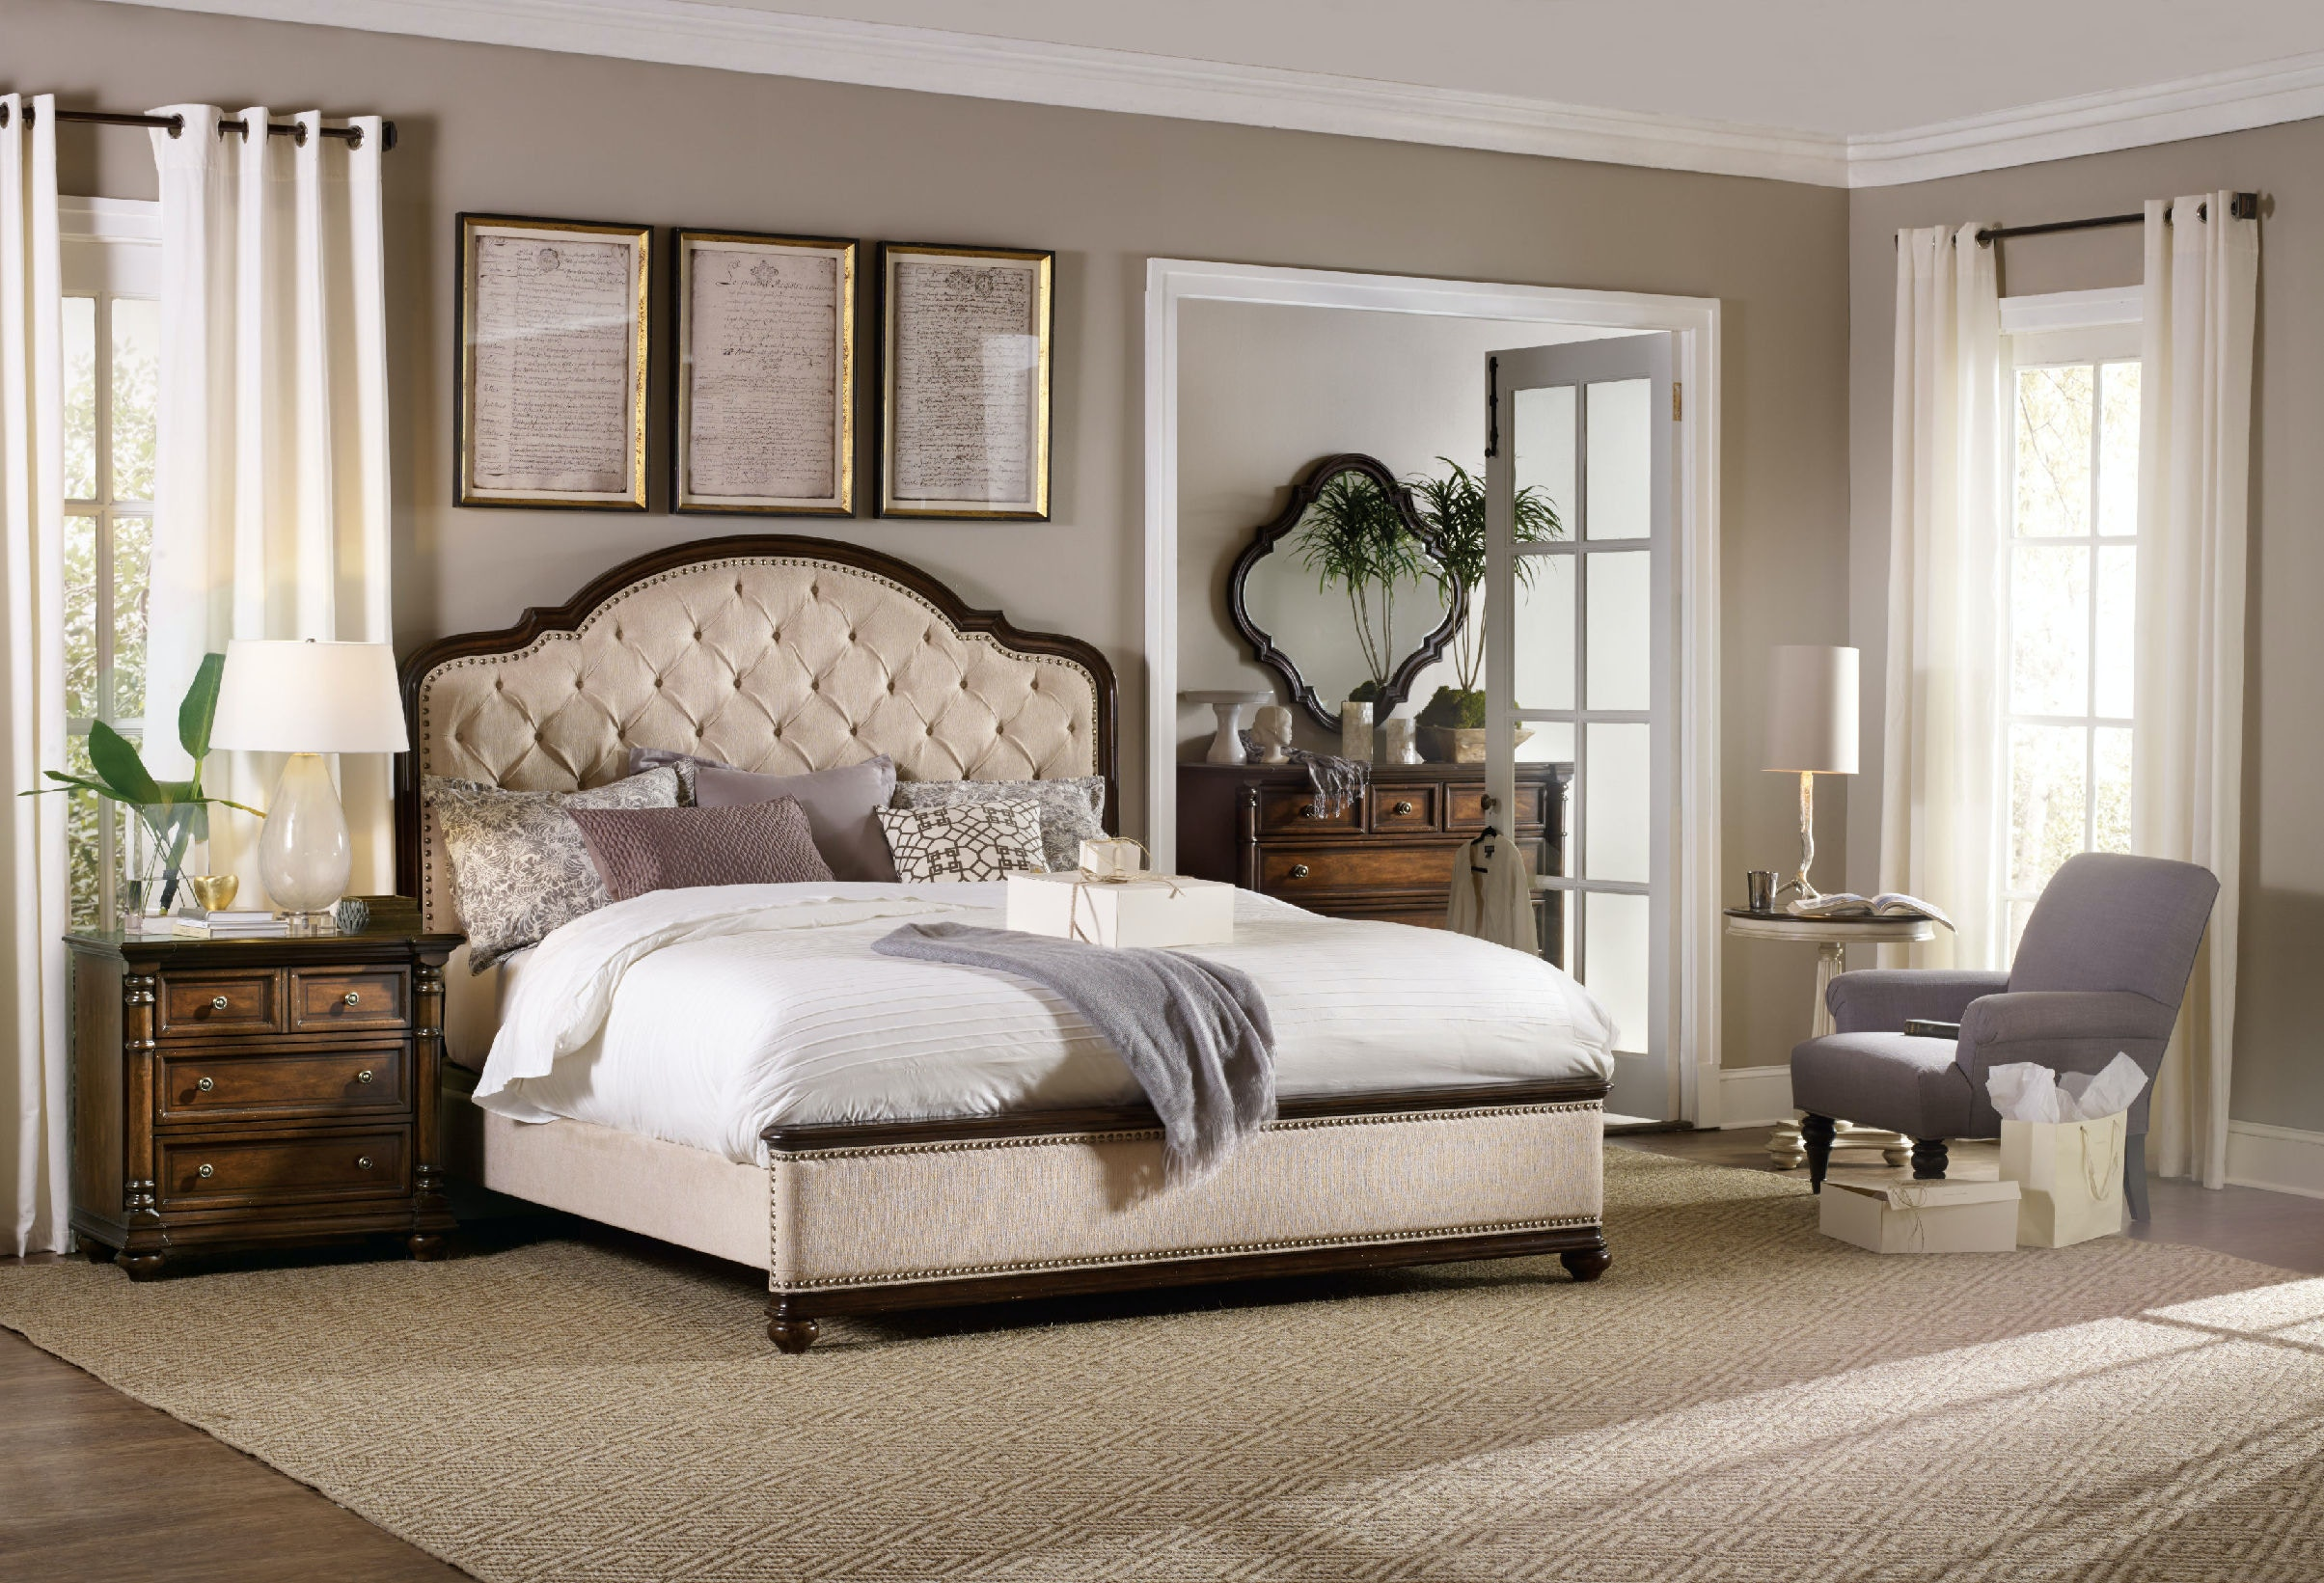 hooker furniture leesburg king upholstered bed